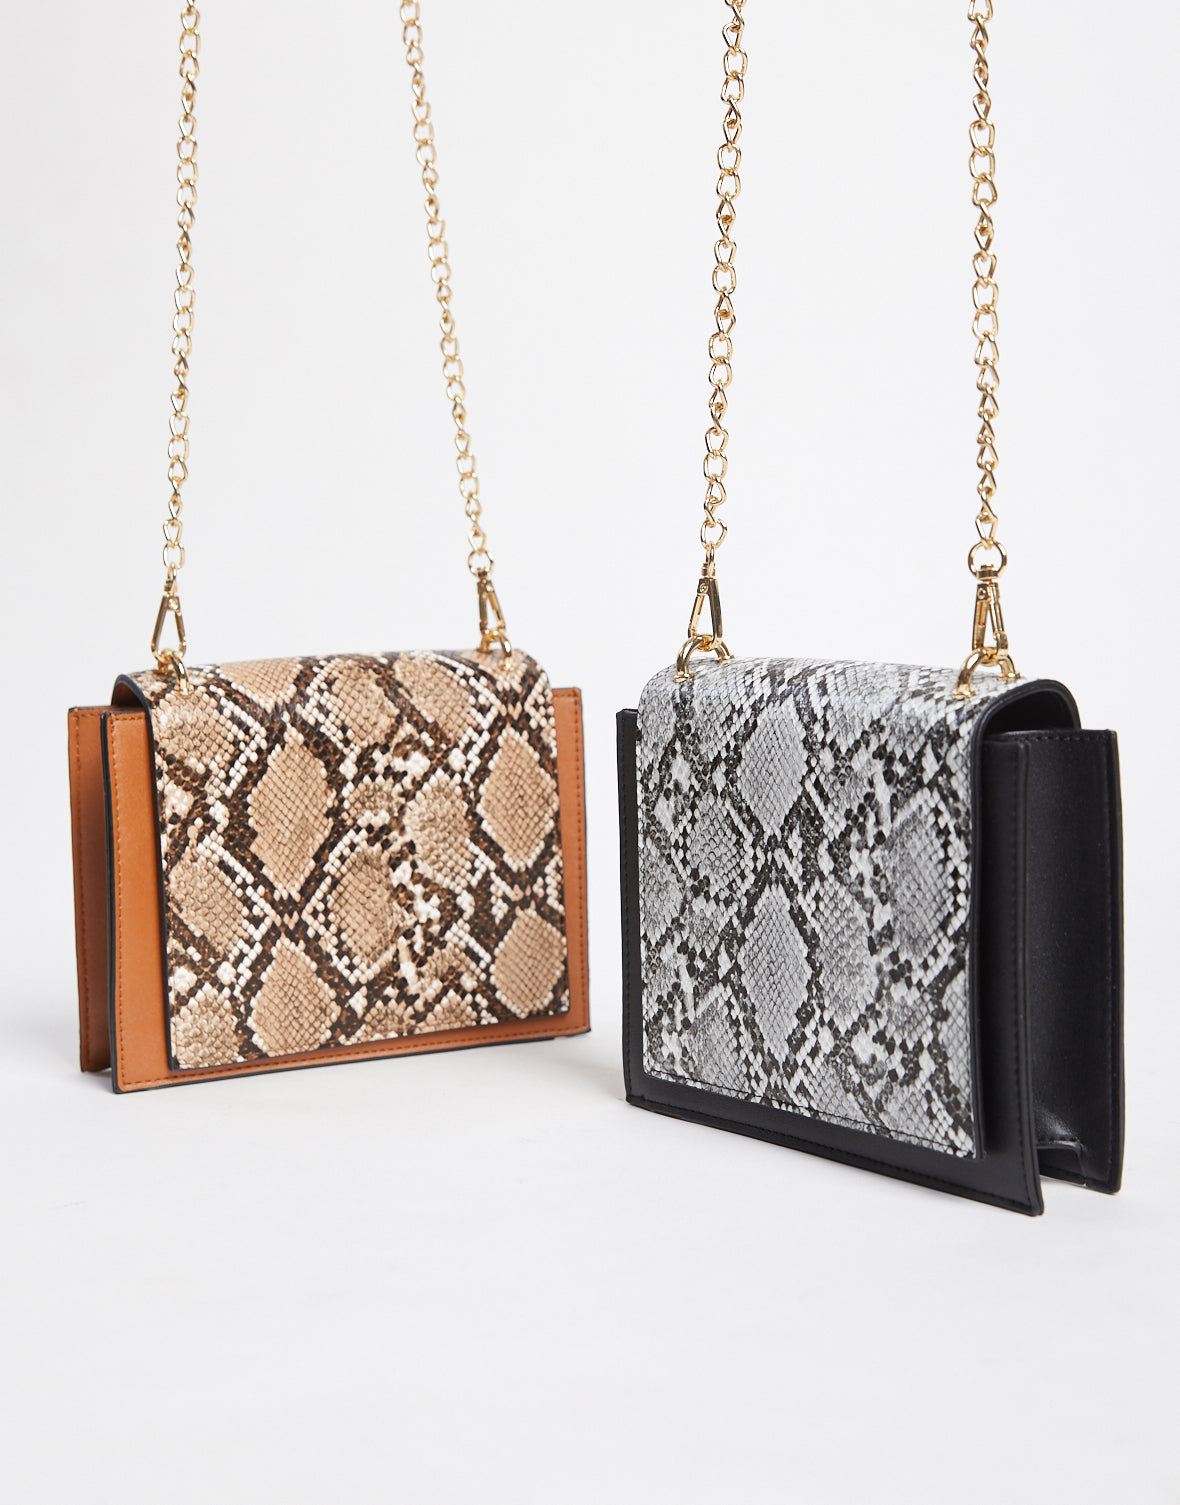 Boxy Snakeskin Shoulder Bag